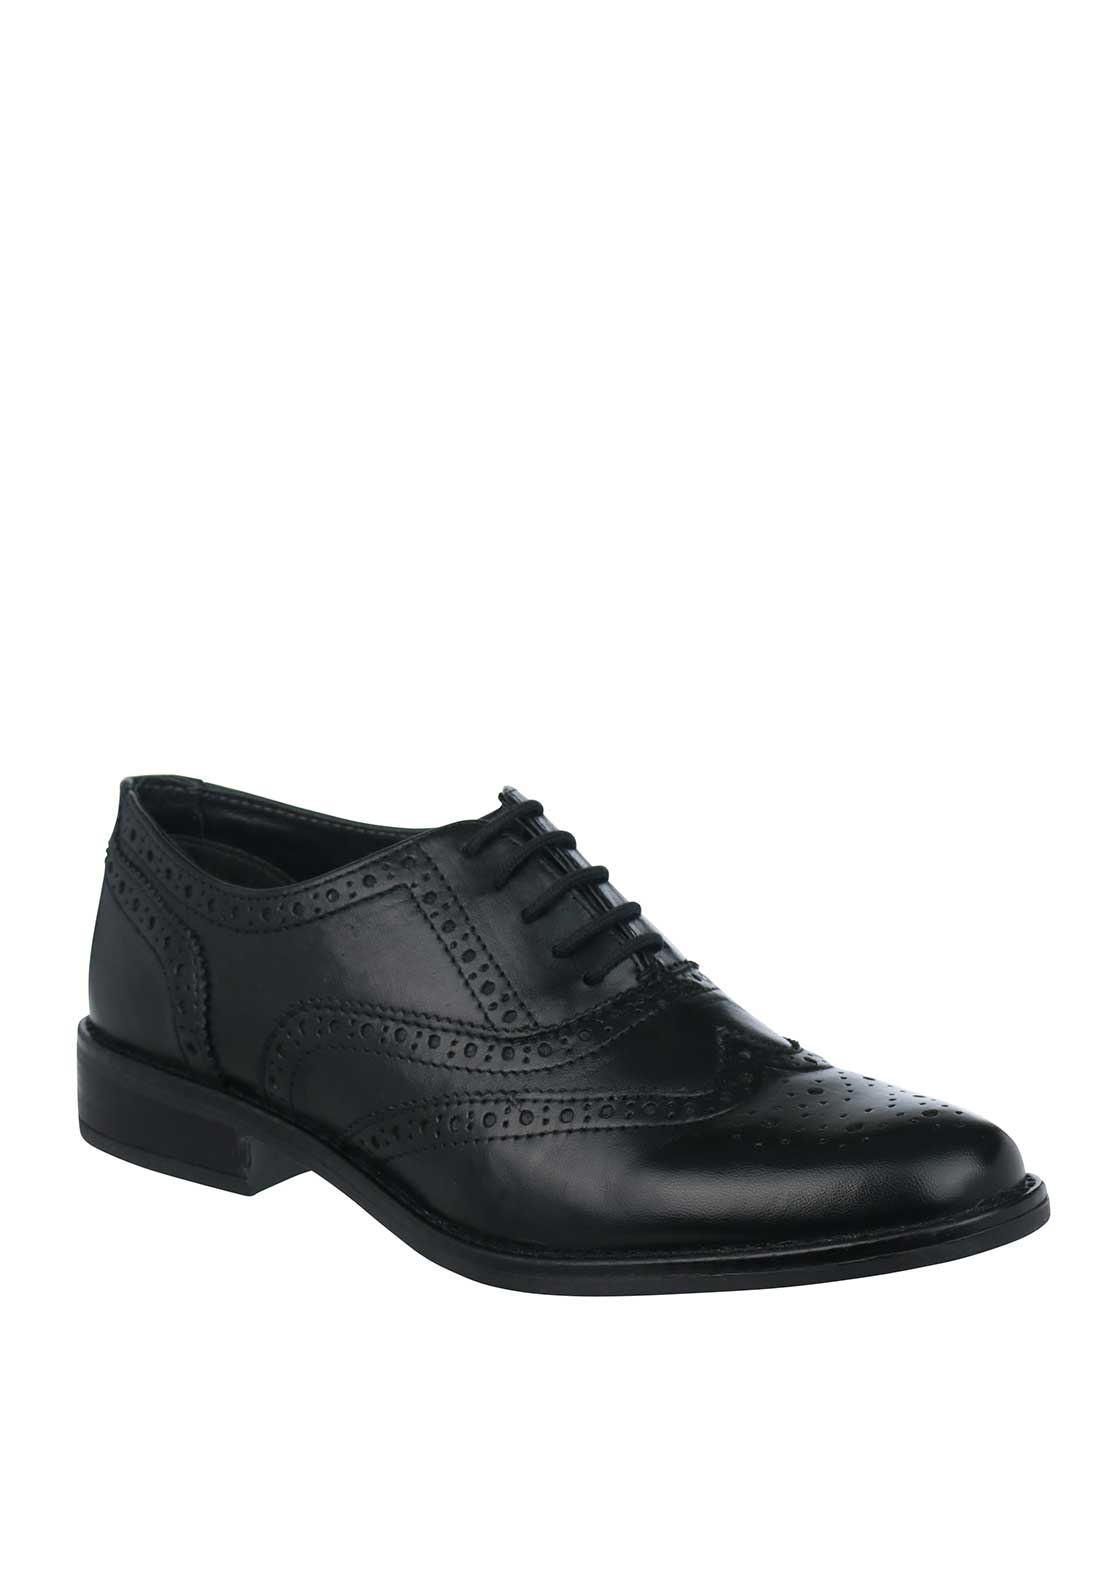 Dubarry Womens Hough Leather Brogues, Black